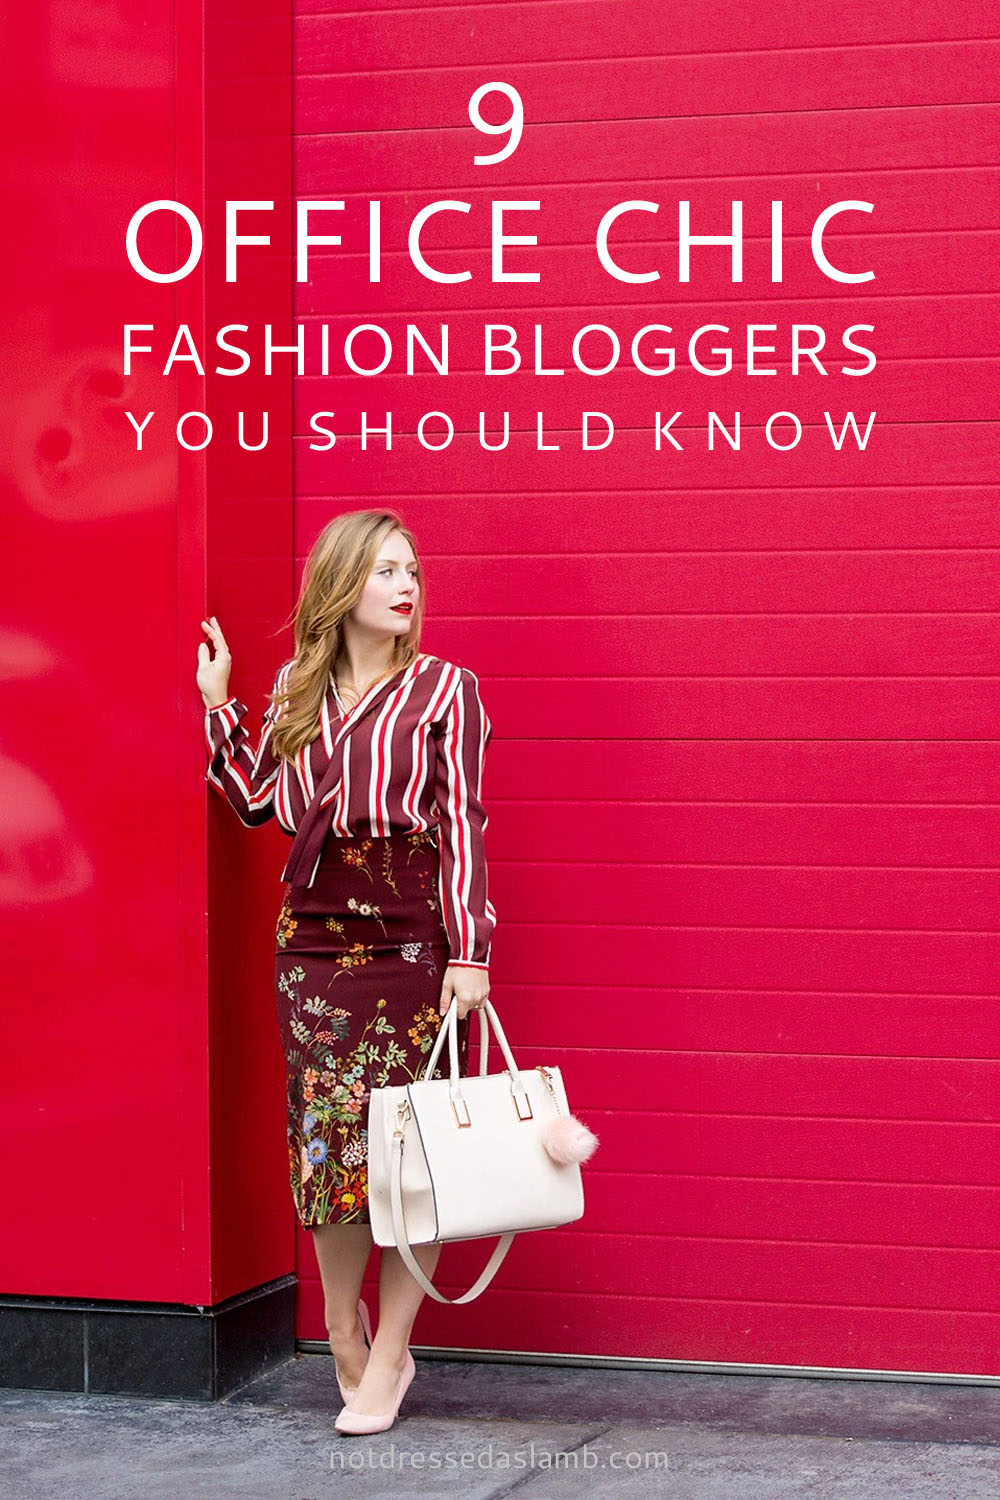 Workwear: 9 Office Chic Fashion Bloggers You Should Know | Not Dressed As Lamb